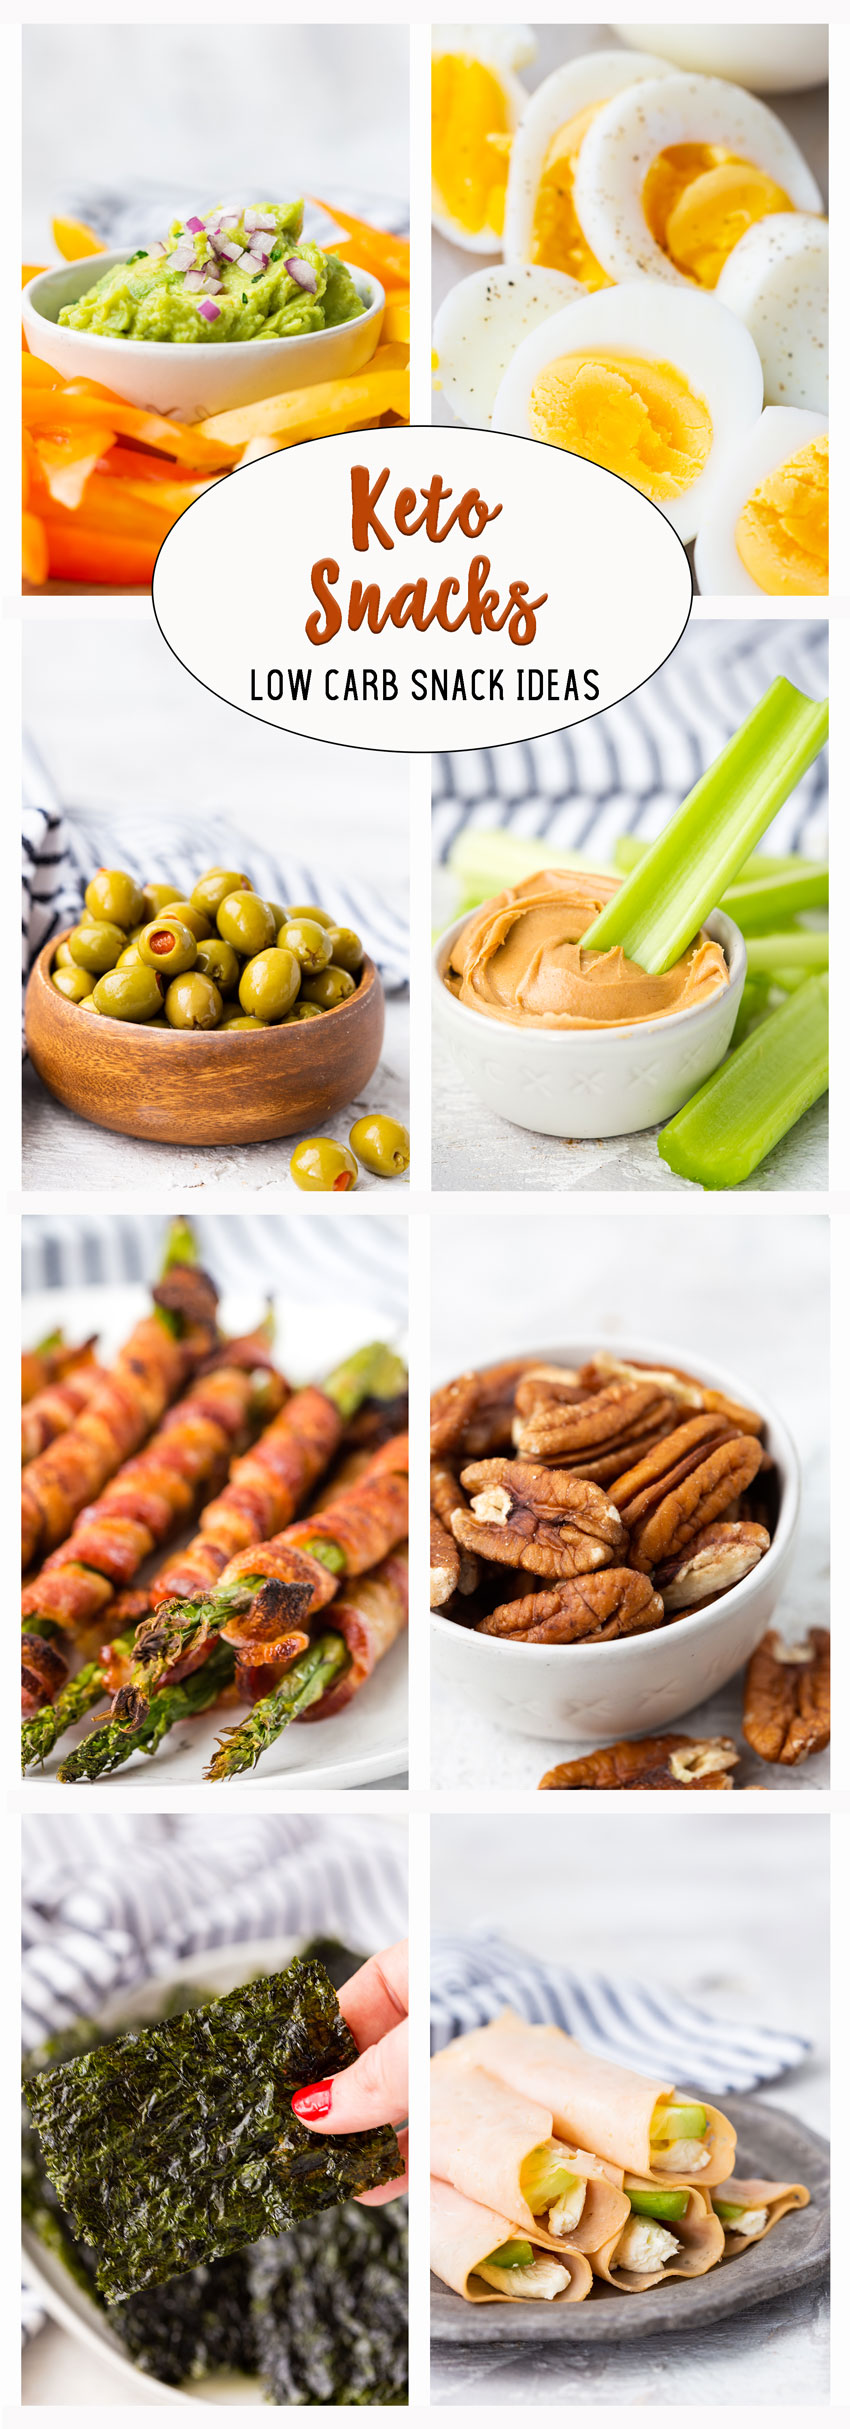 The best tasty low carb snack ideas for keto diet